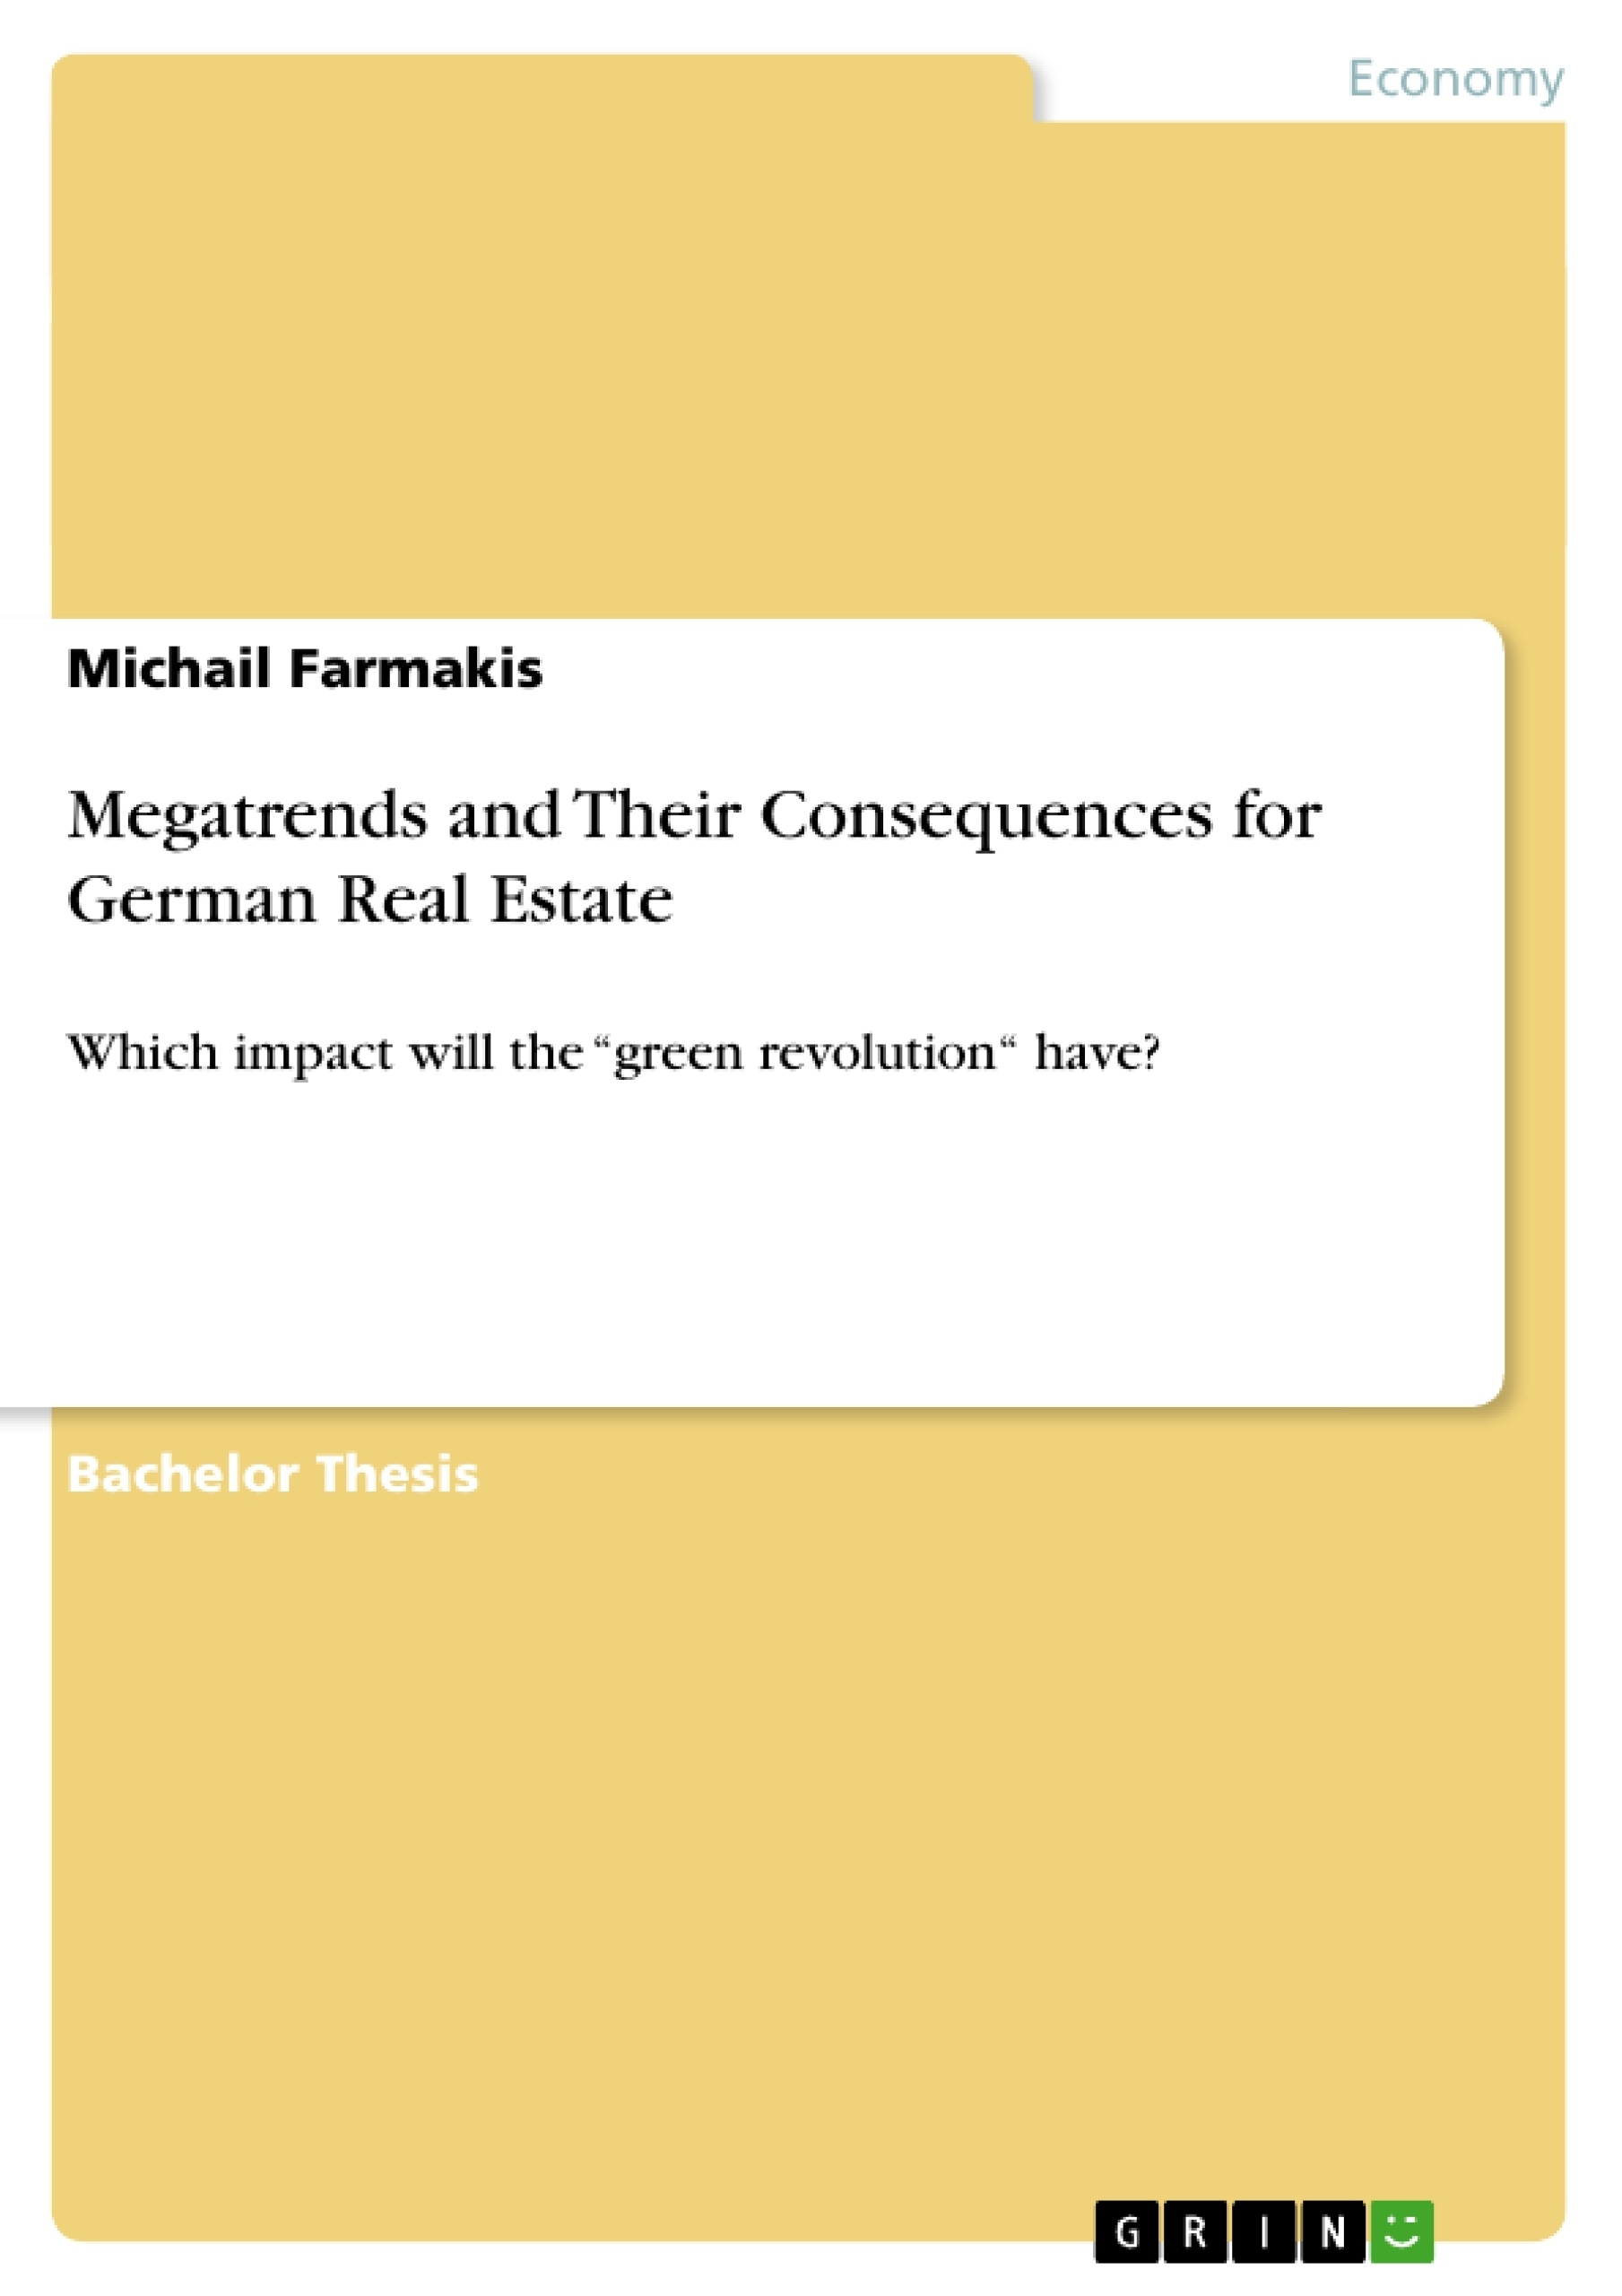 Title: Megatrends and Their Consequences for German Real Estate